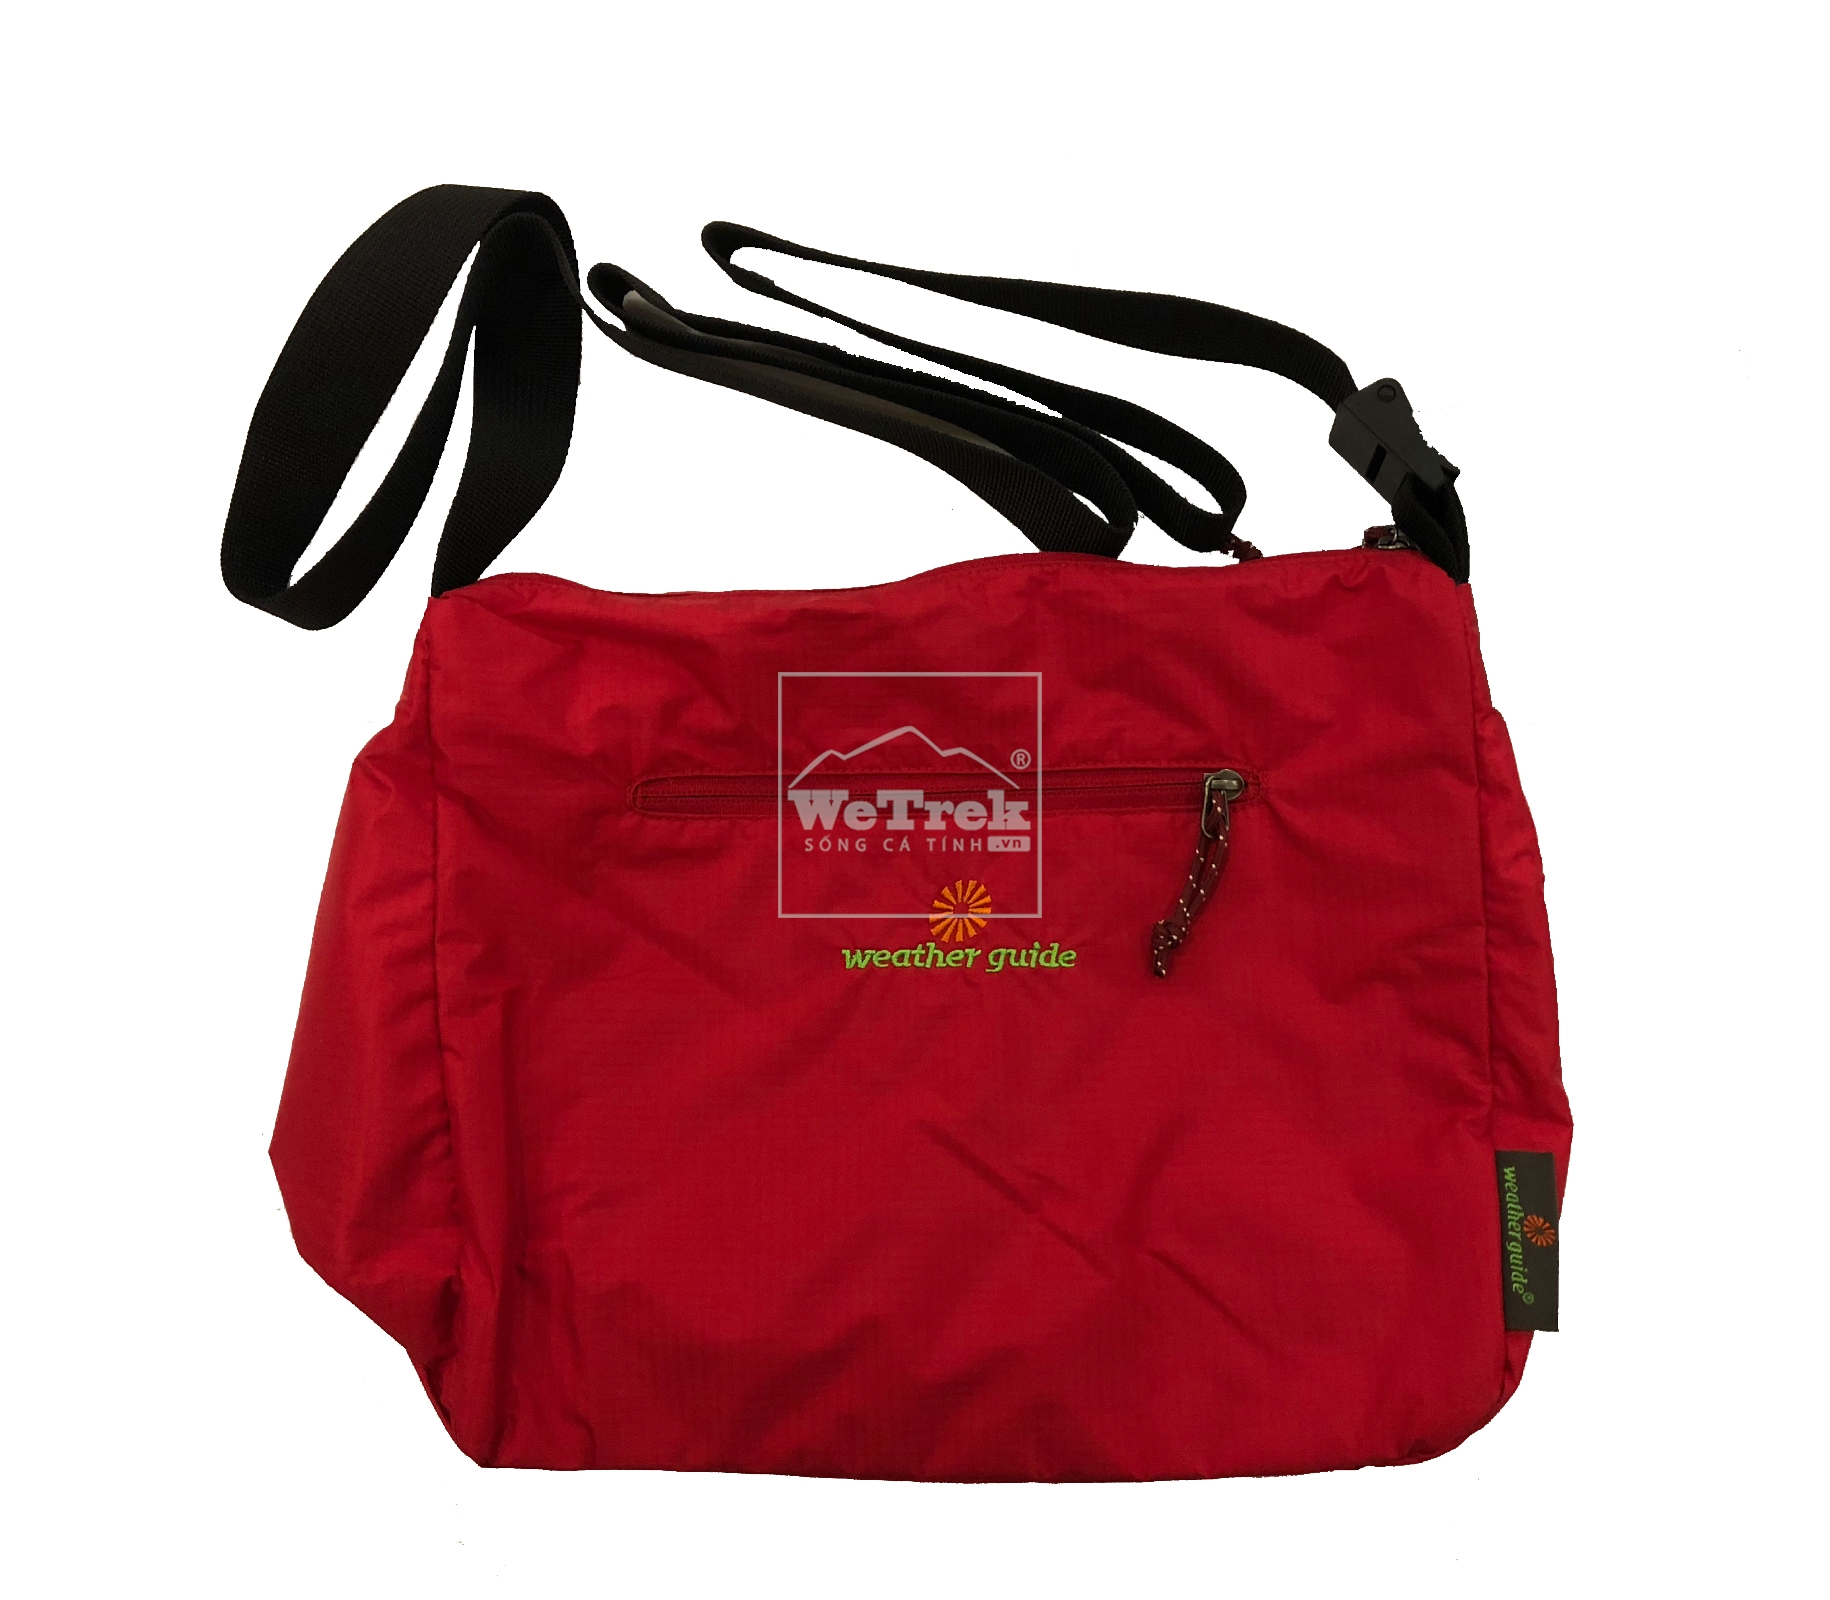 4-tui-deo-cheo-Weather-Guide-Shoulder-Bag-CA-0019-8299-wetrekvn.jpg